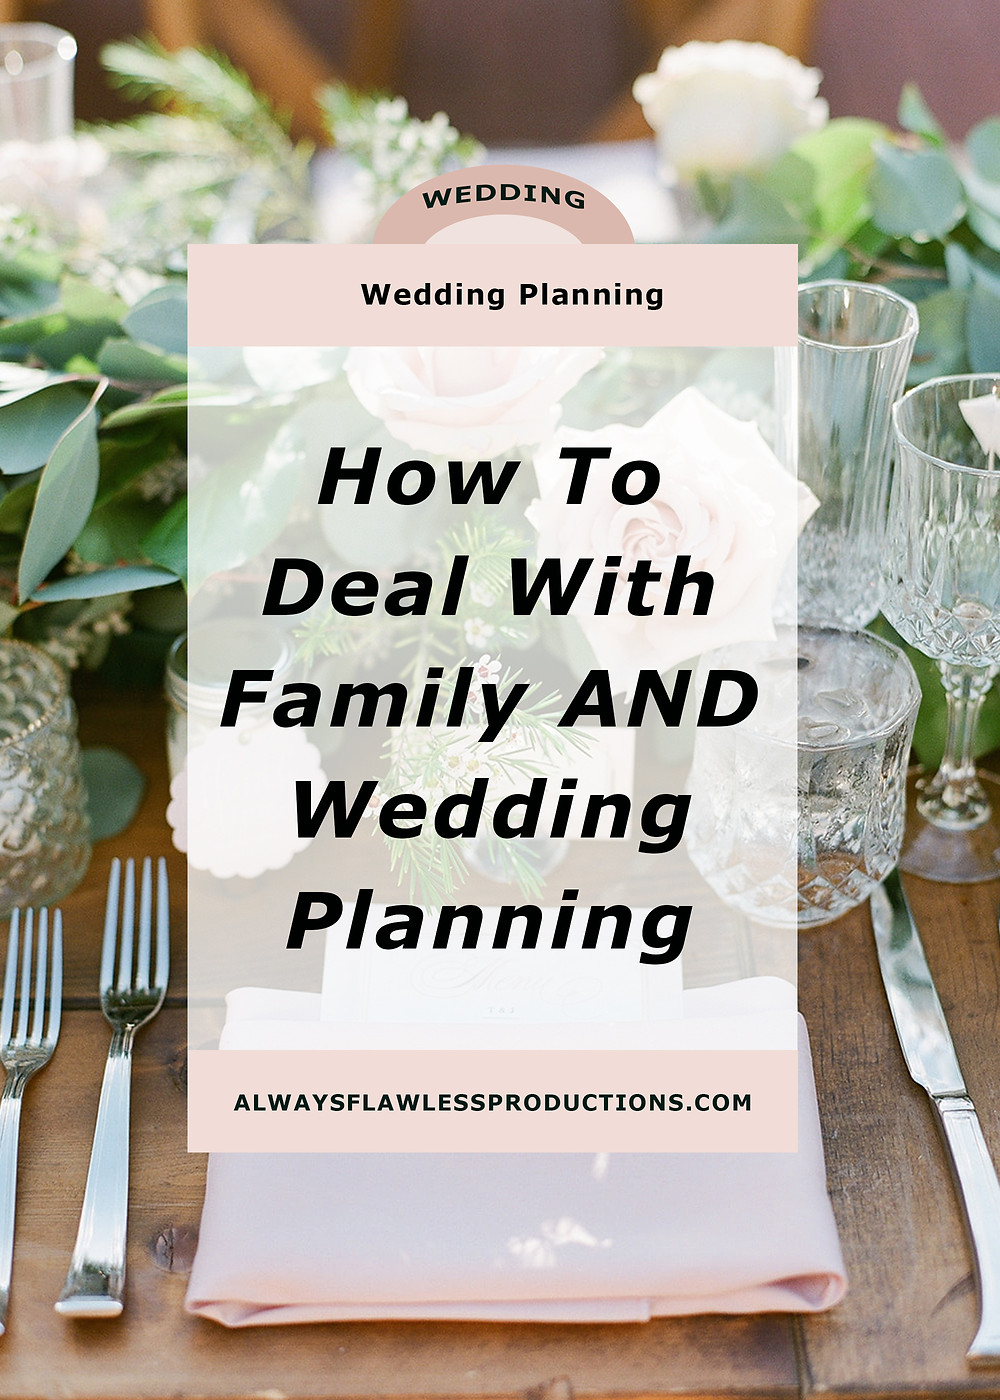 How To Deal With Family And Wedding Planning